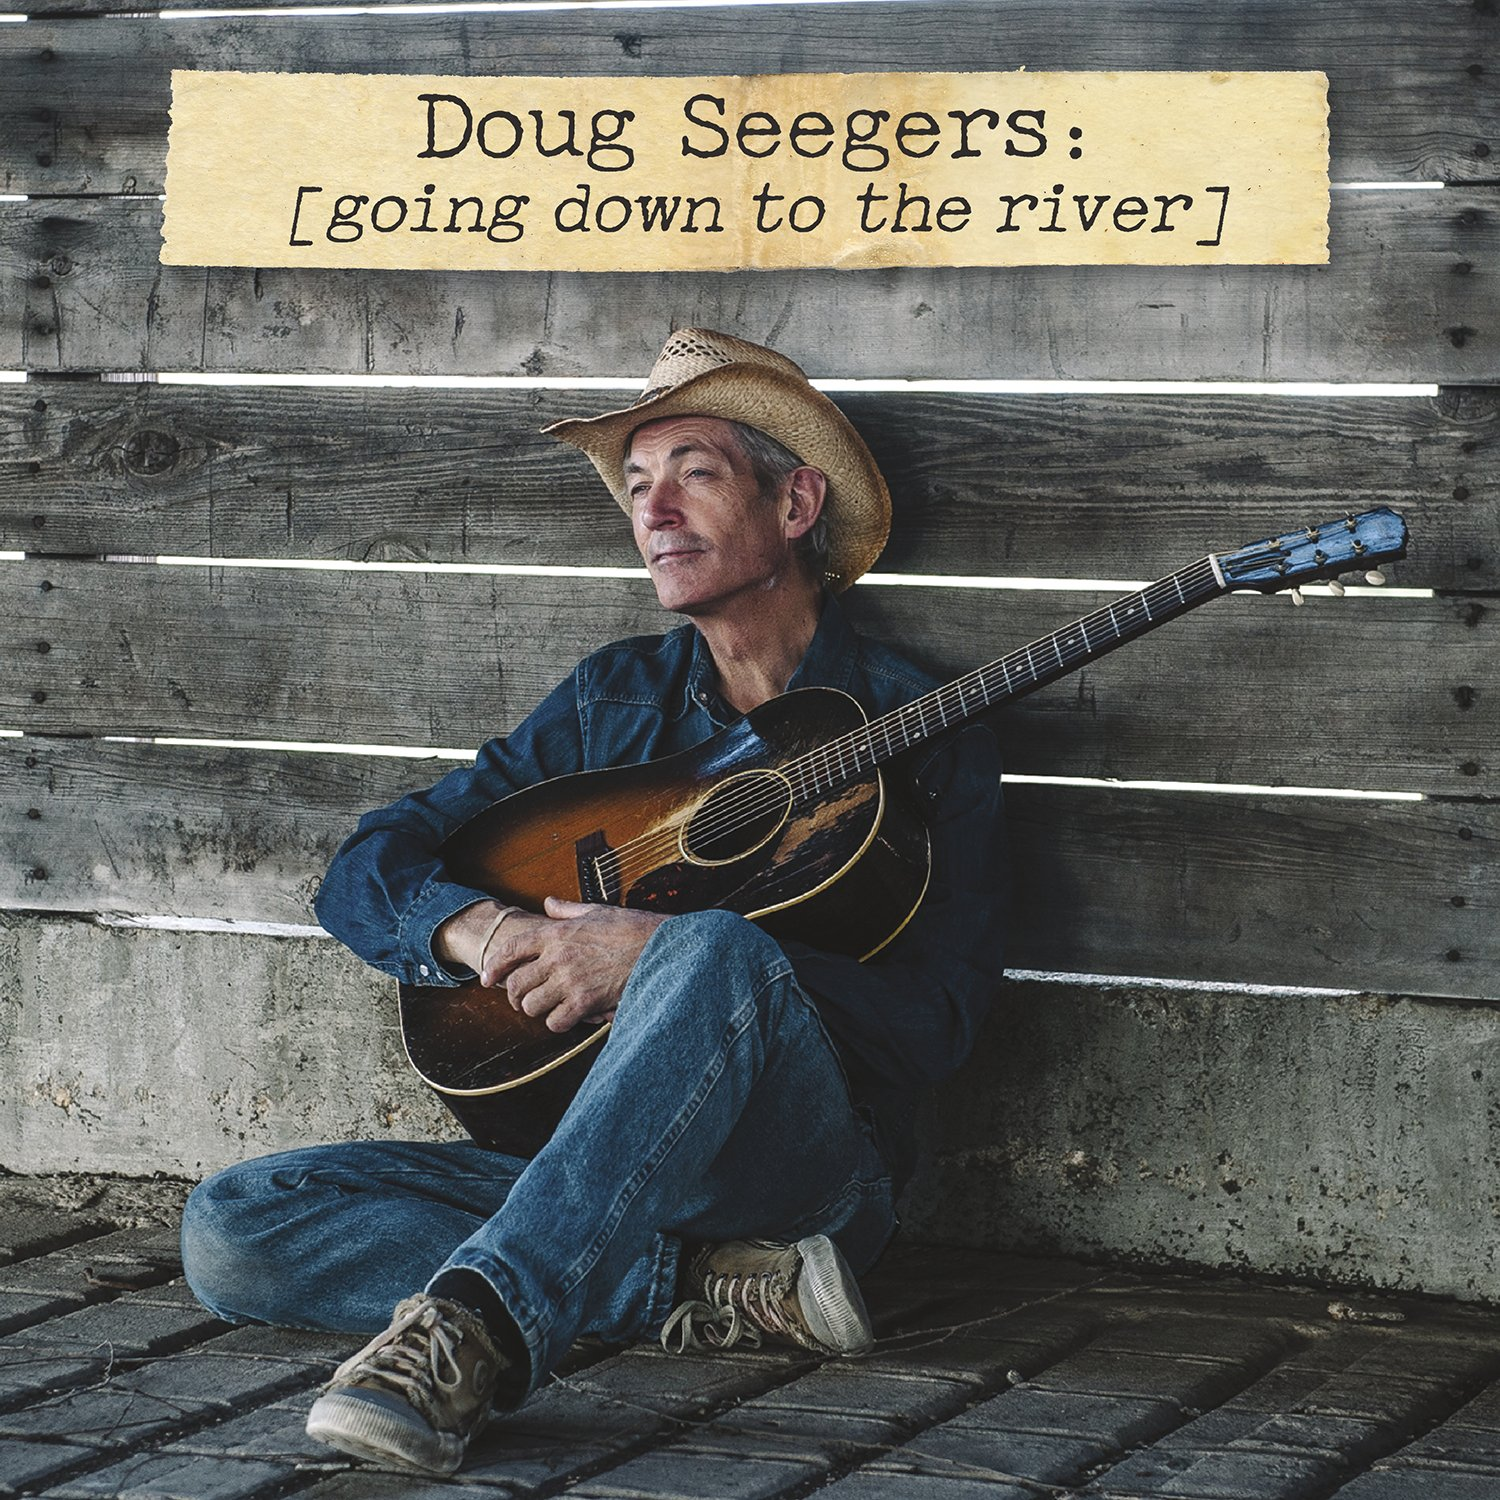 doug seegers going down to the river music